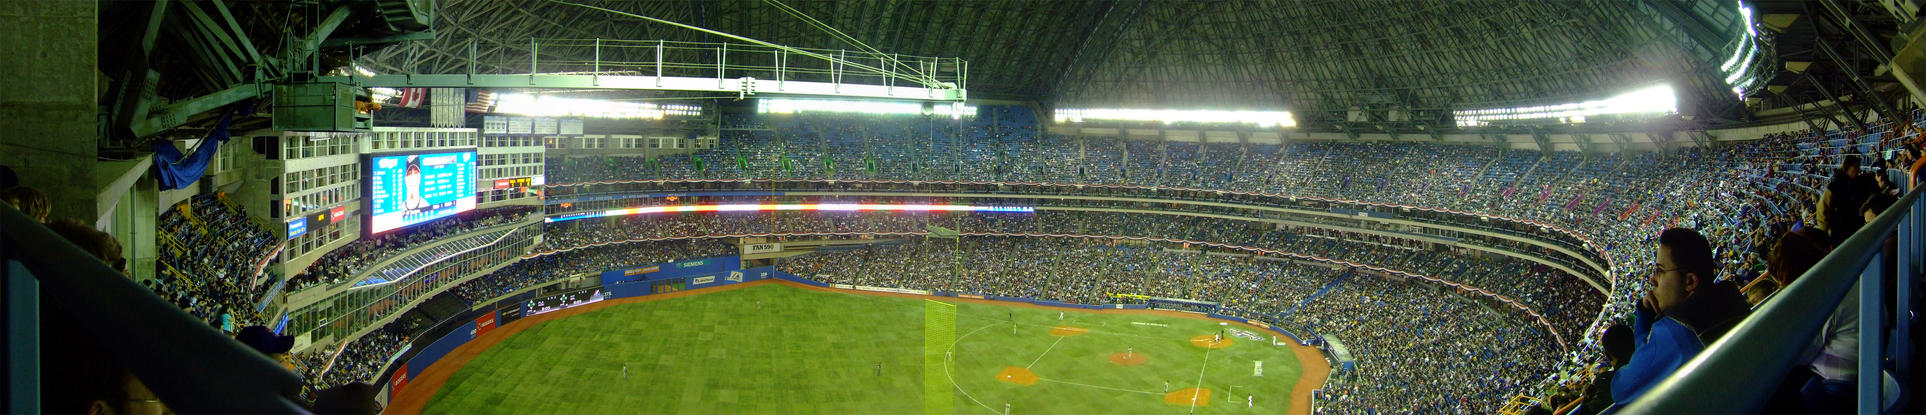 Rogers Centre Panorama by PrimalOrB